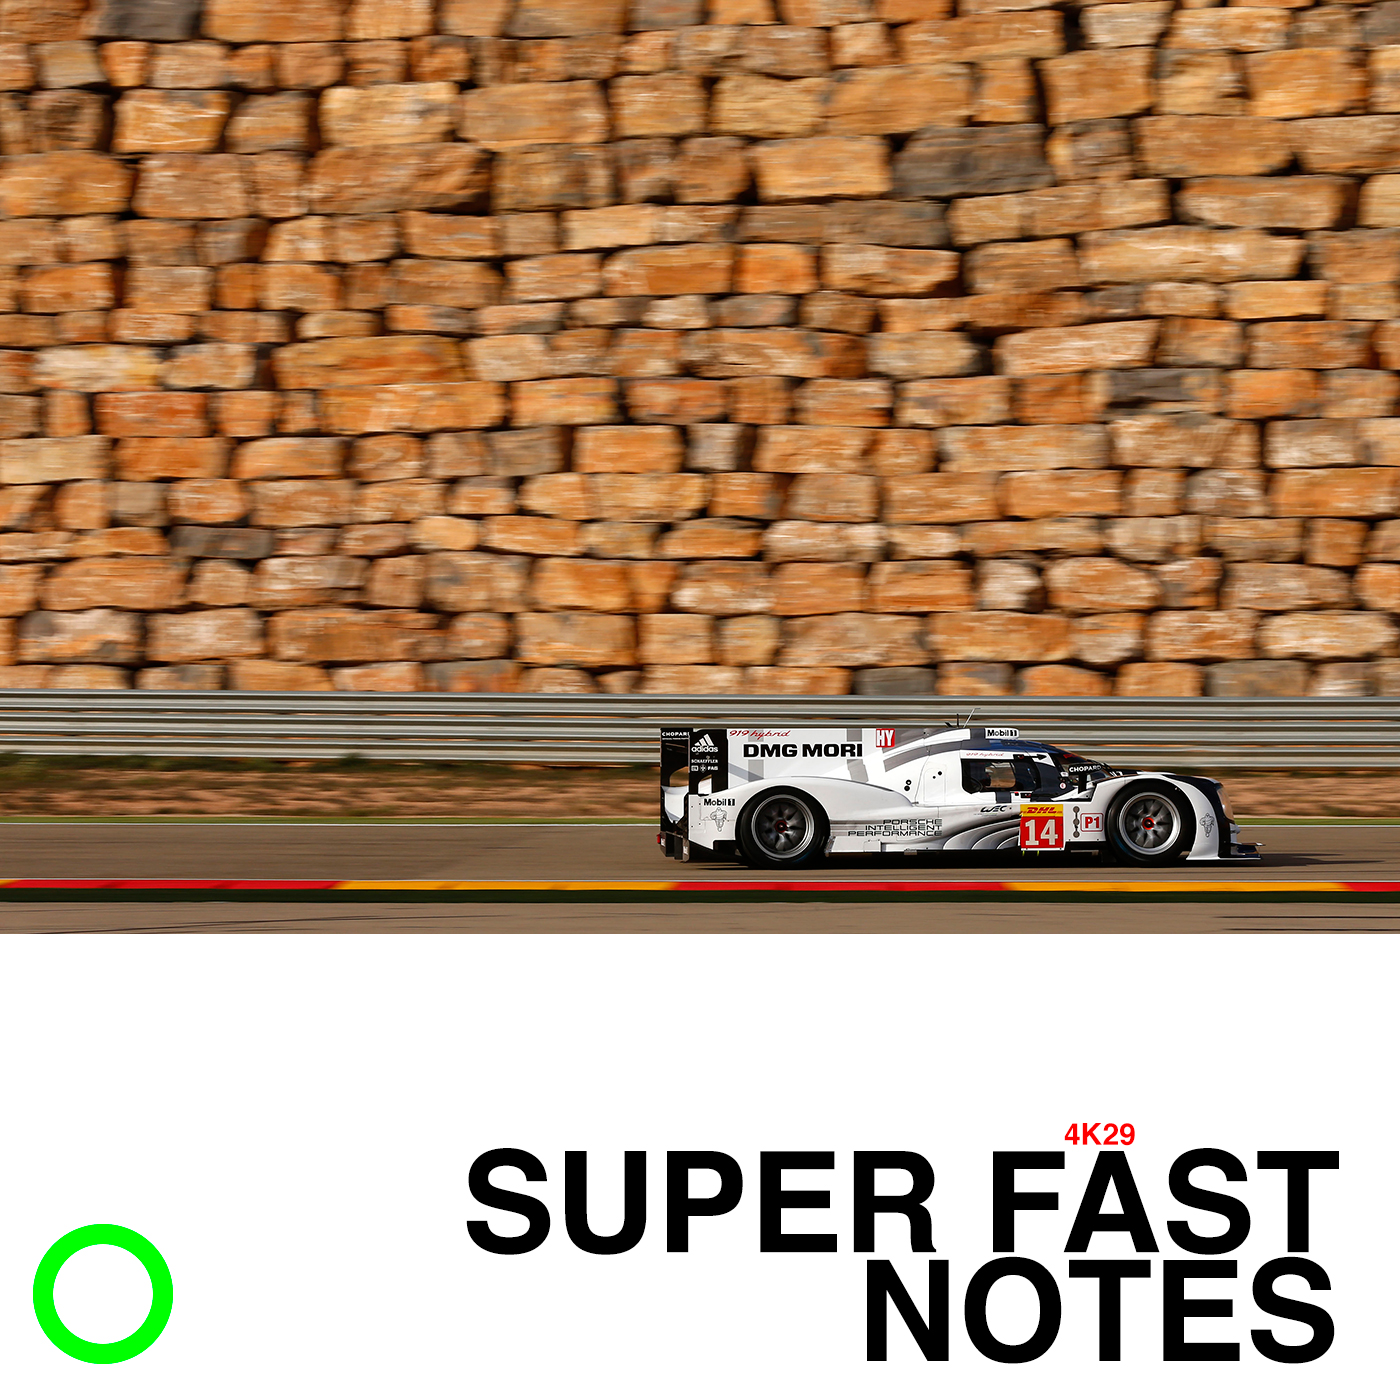 SUPER FAST NOTES 4K29